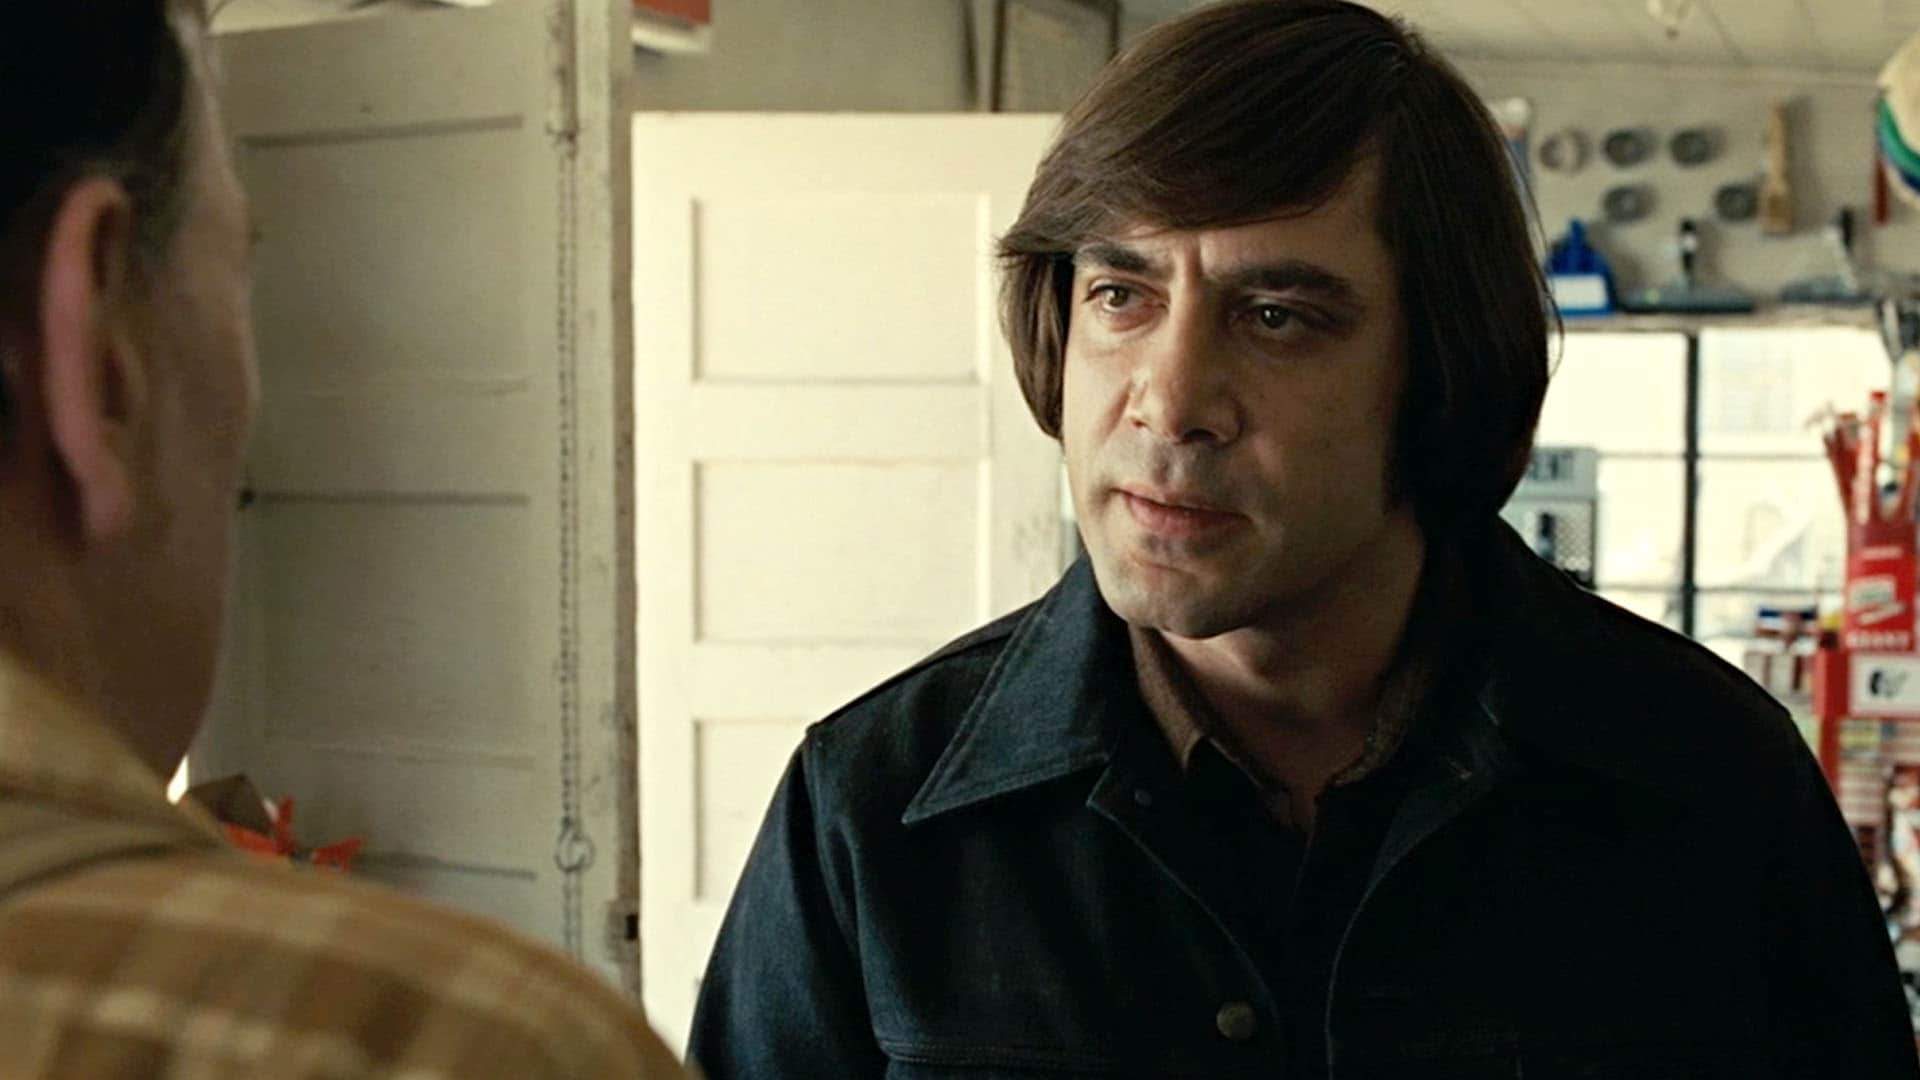 Ten years later, the cynicism of 'No Country For Old Men' feels markedly prescient